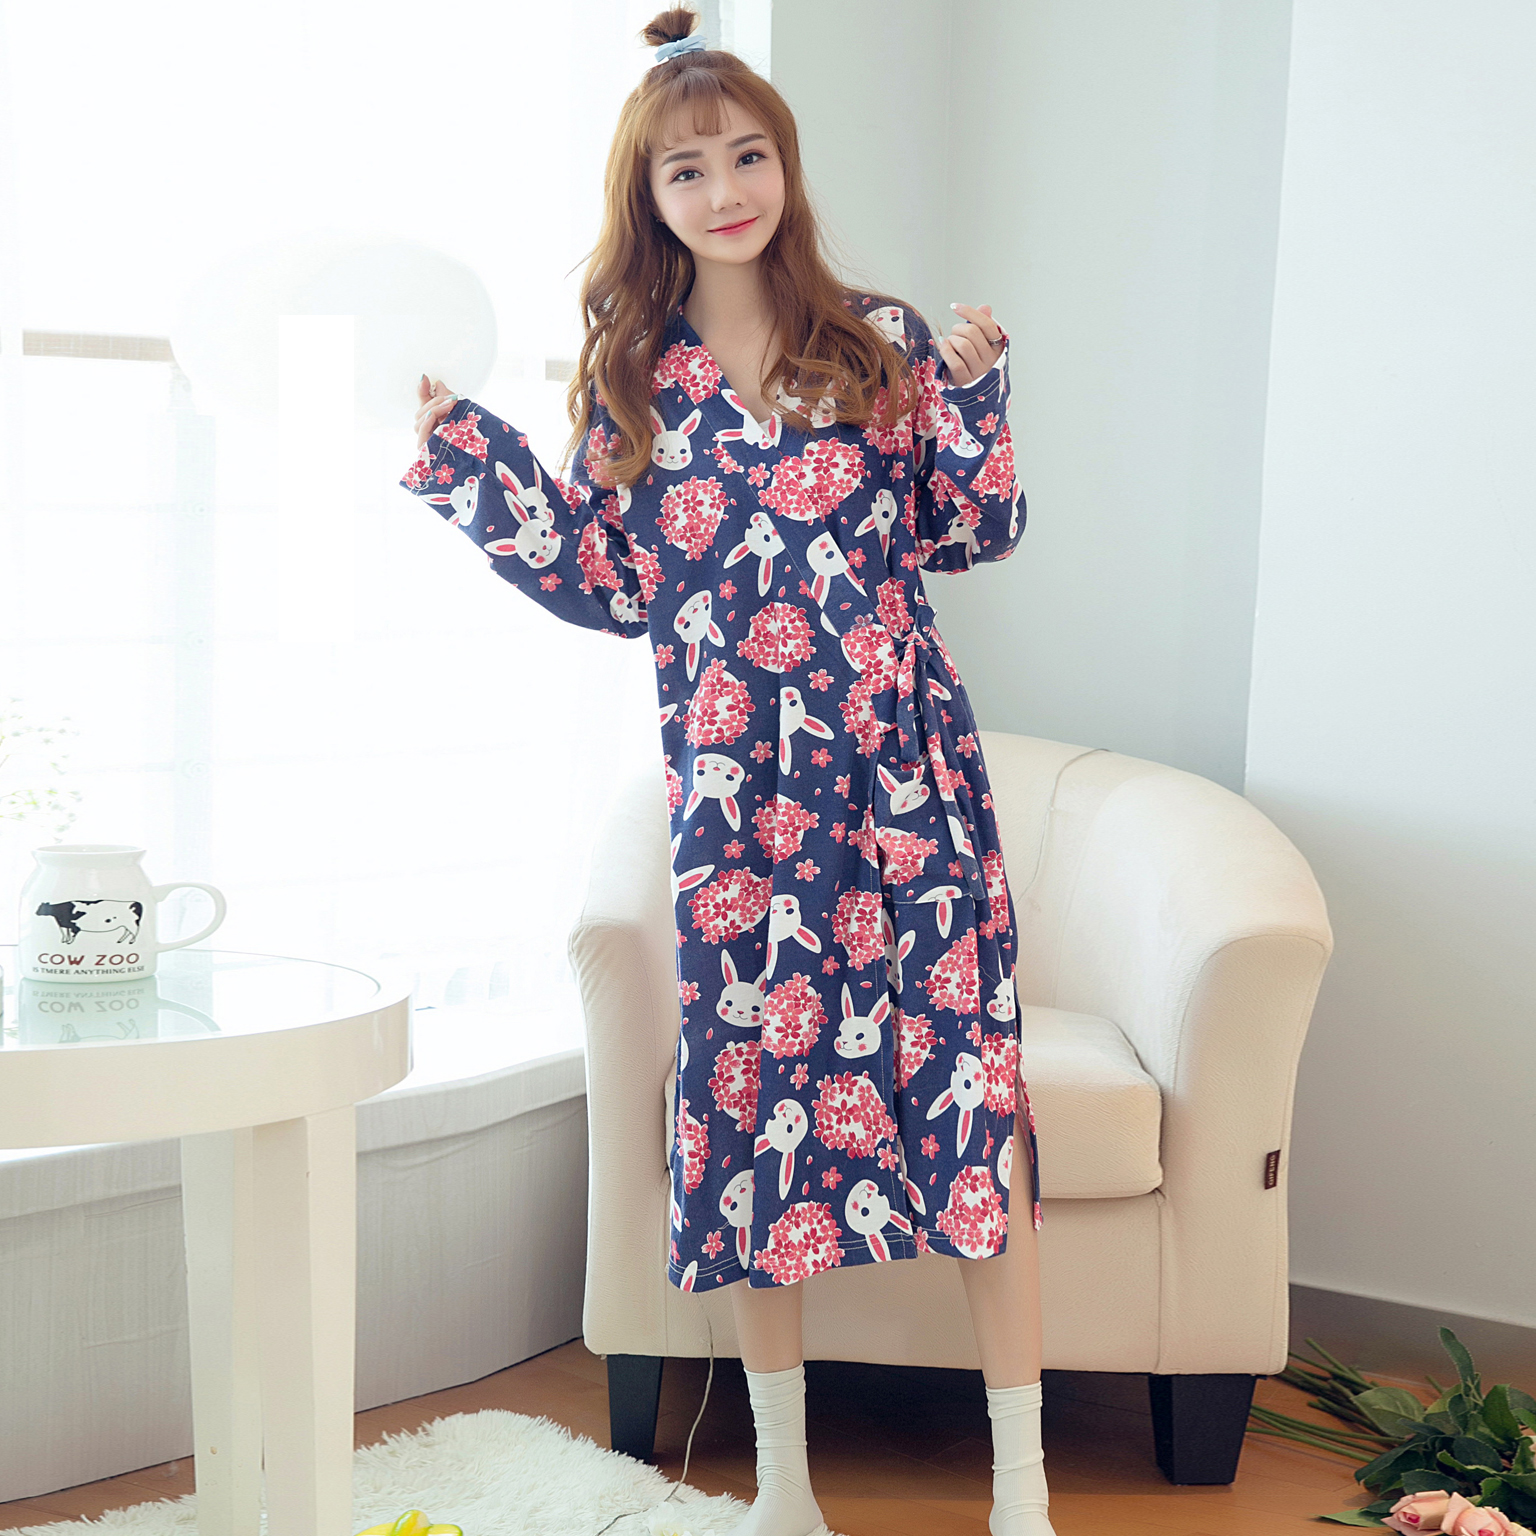 2PCS Sexy Thick Warm Flannel Robes Sets for Women 2018 Winter Coral Velvet Lingerie Night Dress Bathrobe Two Piece Set Nightgown 352